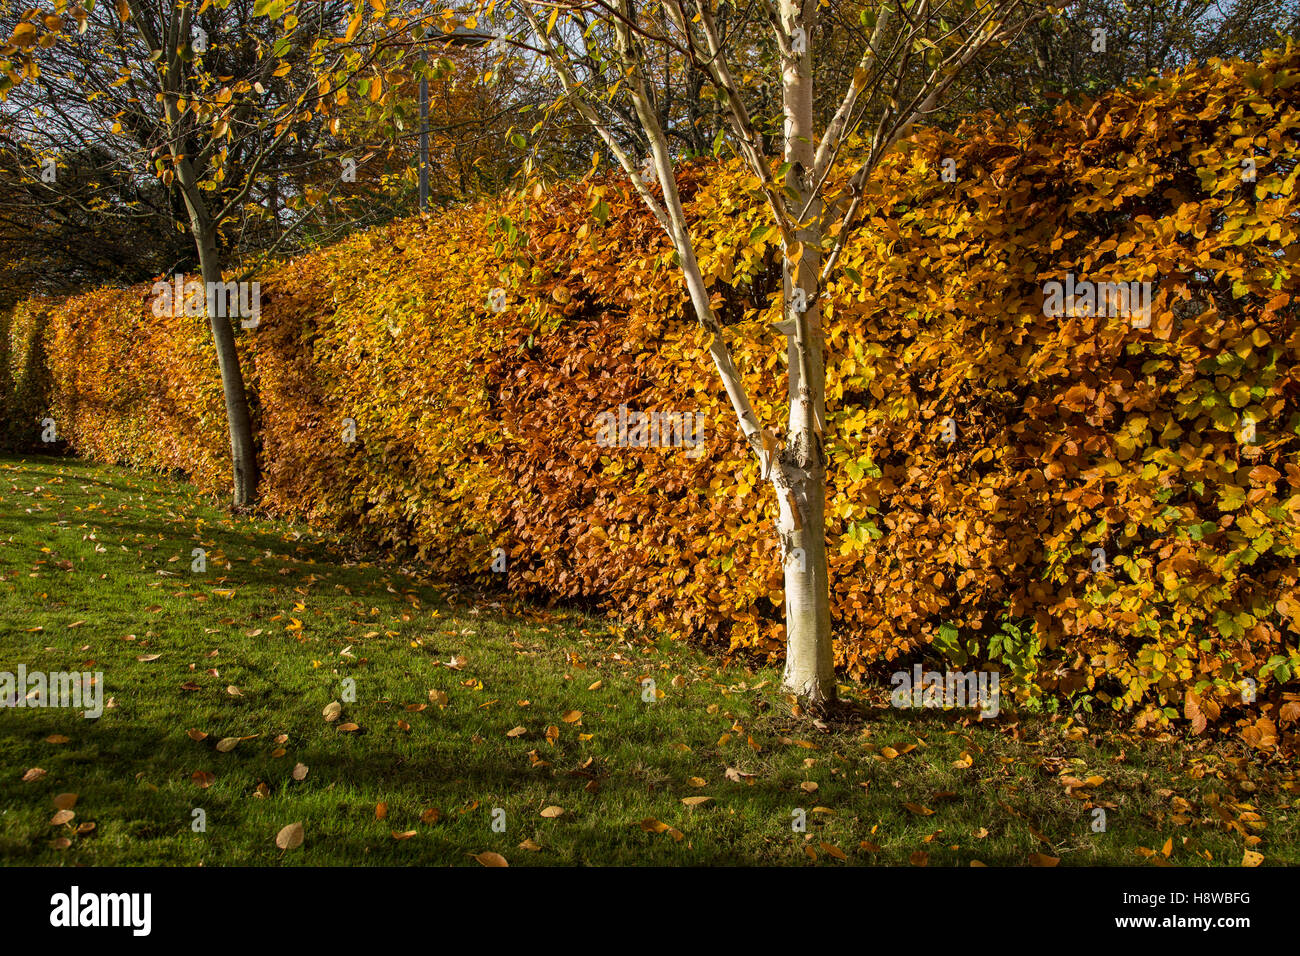 common beech fagus sylvatica hedge stockfotos common beech fagus sylvatica hedge bilder alamy. Black Bedroom Furniture Sets. Home Design Ideas